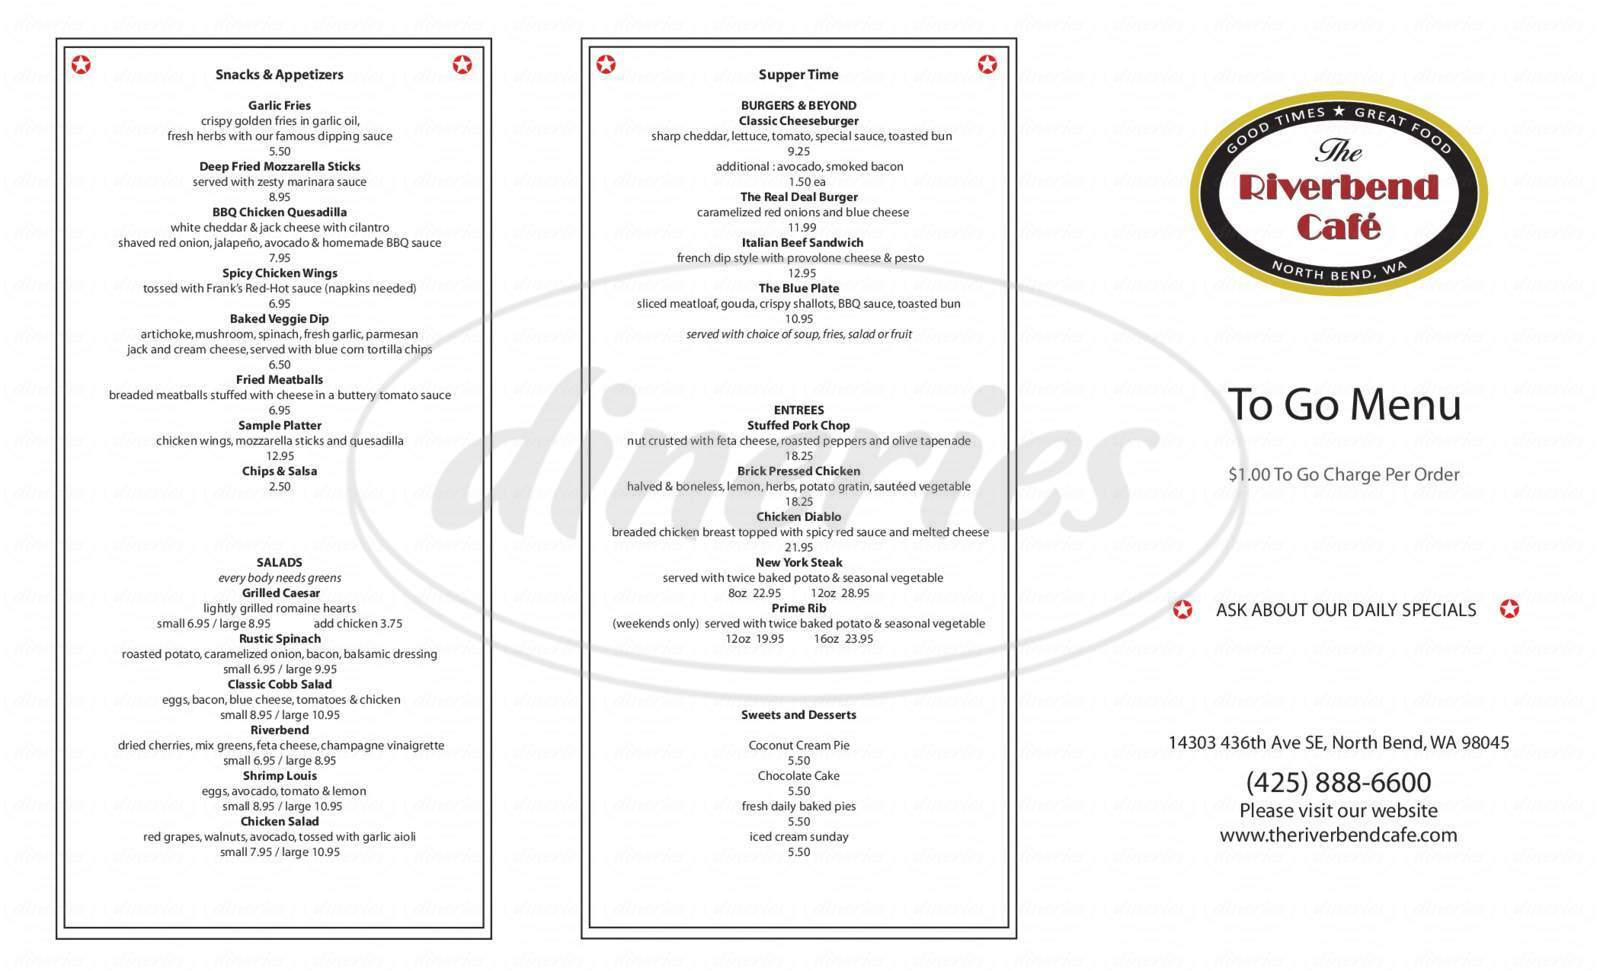 menu for Riverbend Cafe